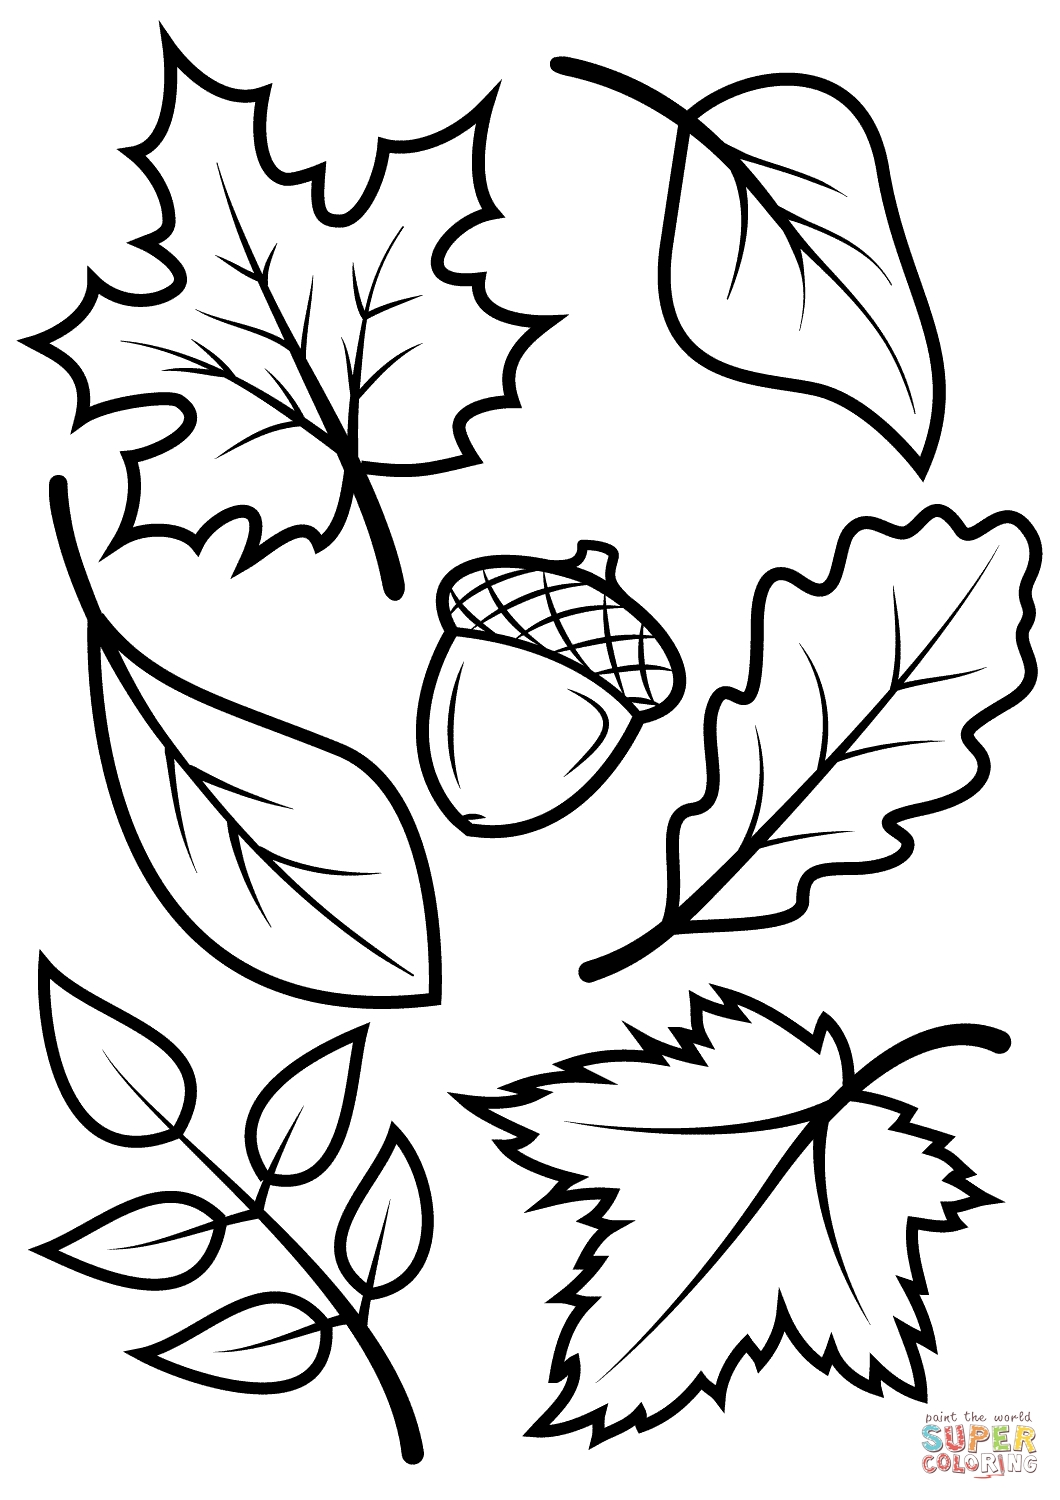 1060x1500 Happy Thanksgiving Leaves Coloring Pages To Print Coloring